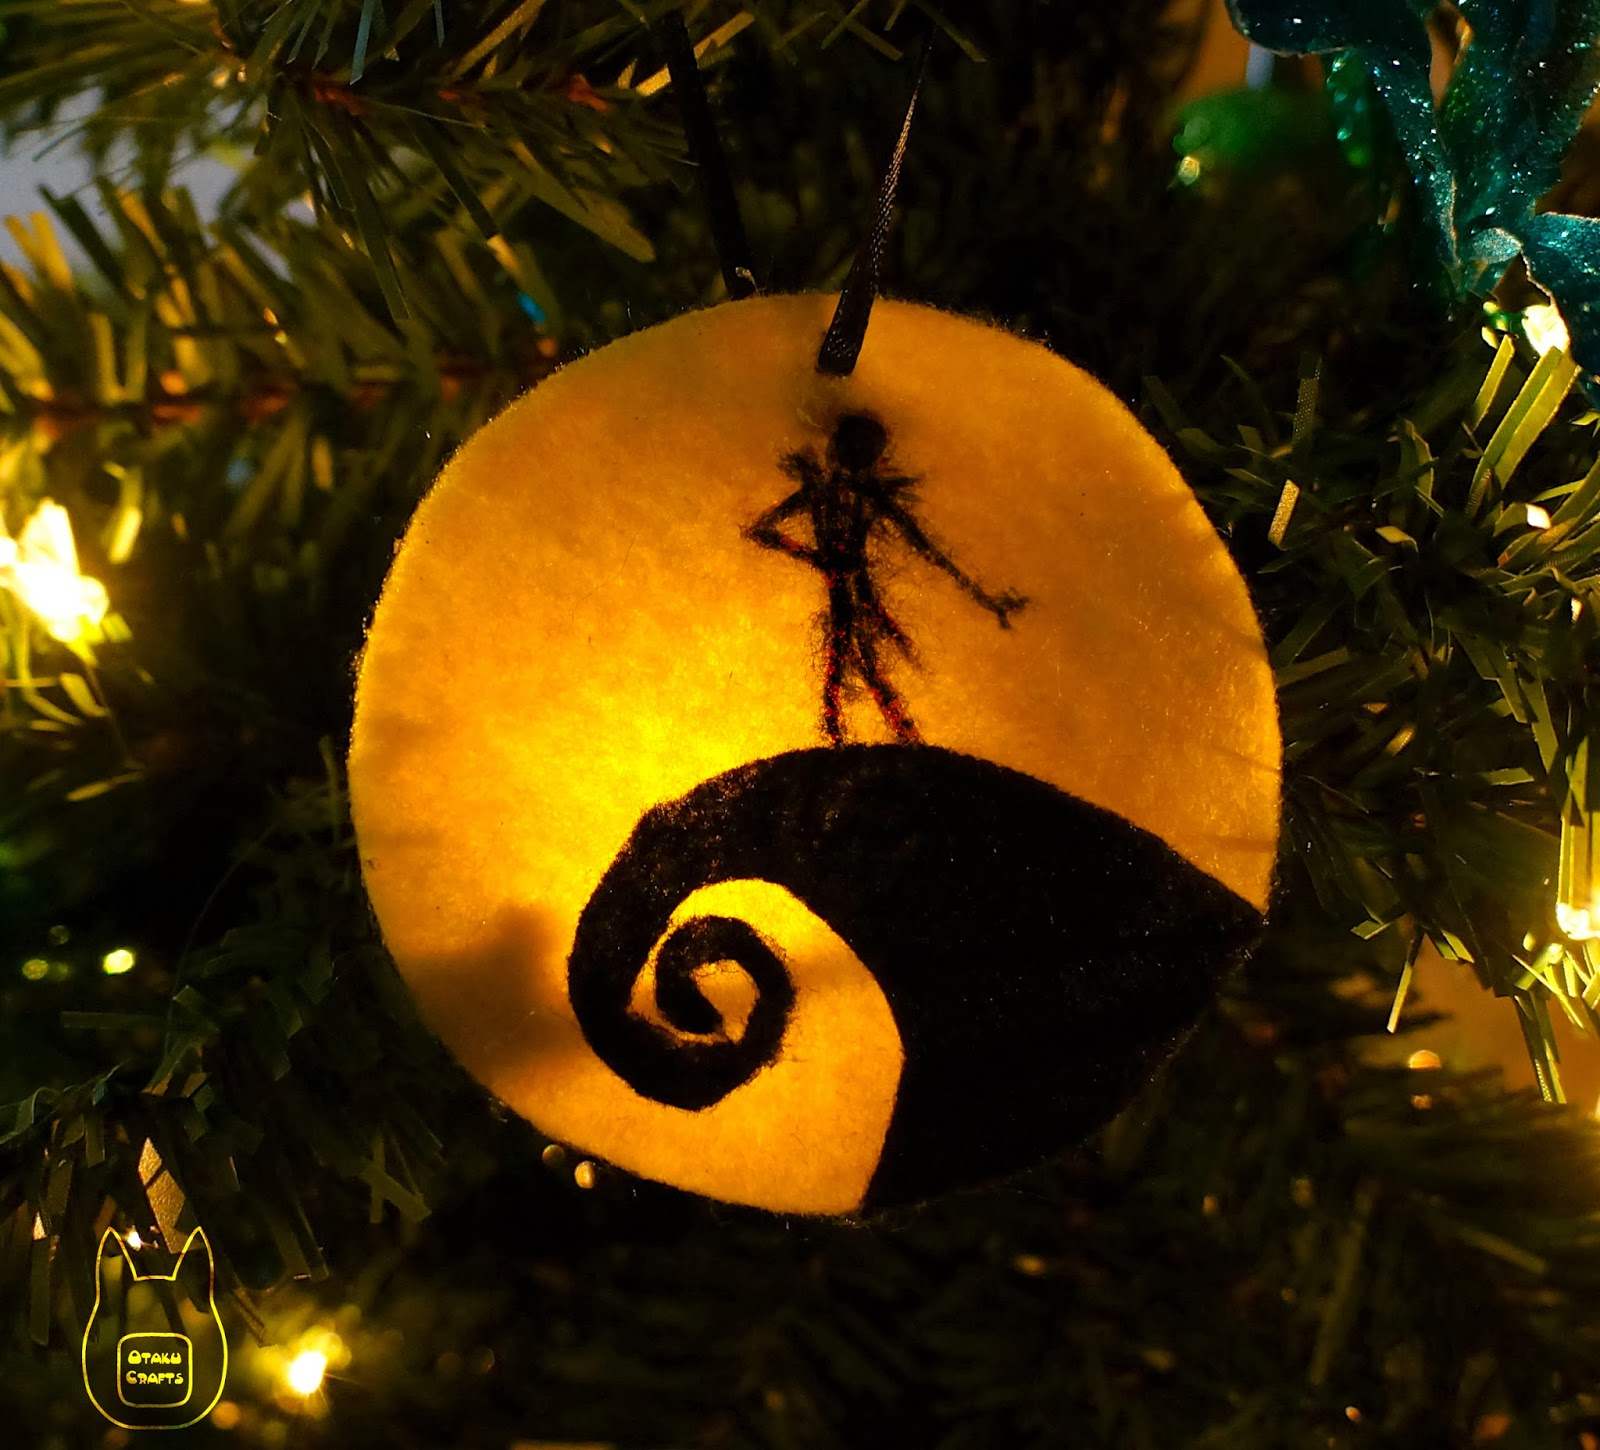 Otaku Crafts: Nightmare Before Christmas Ornament